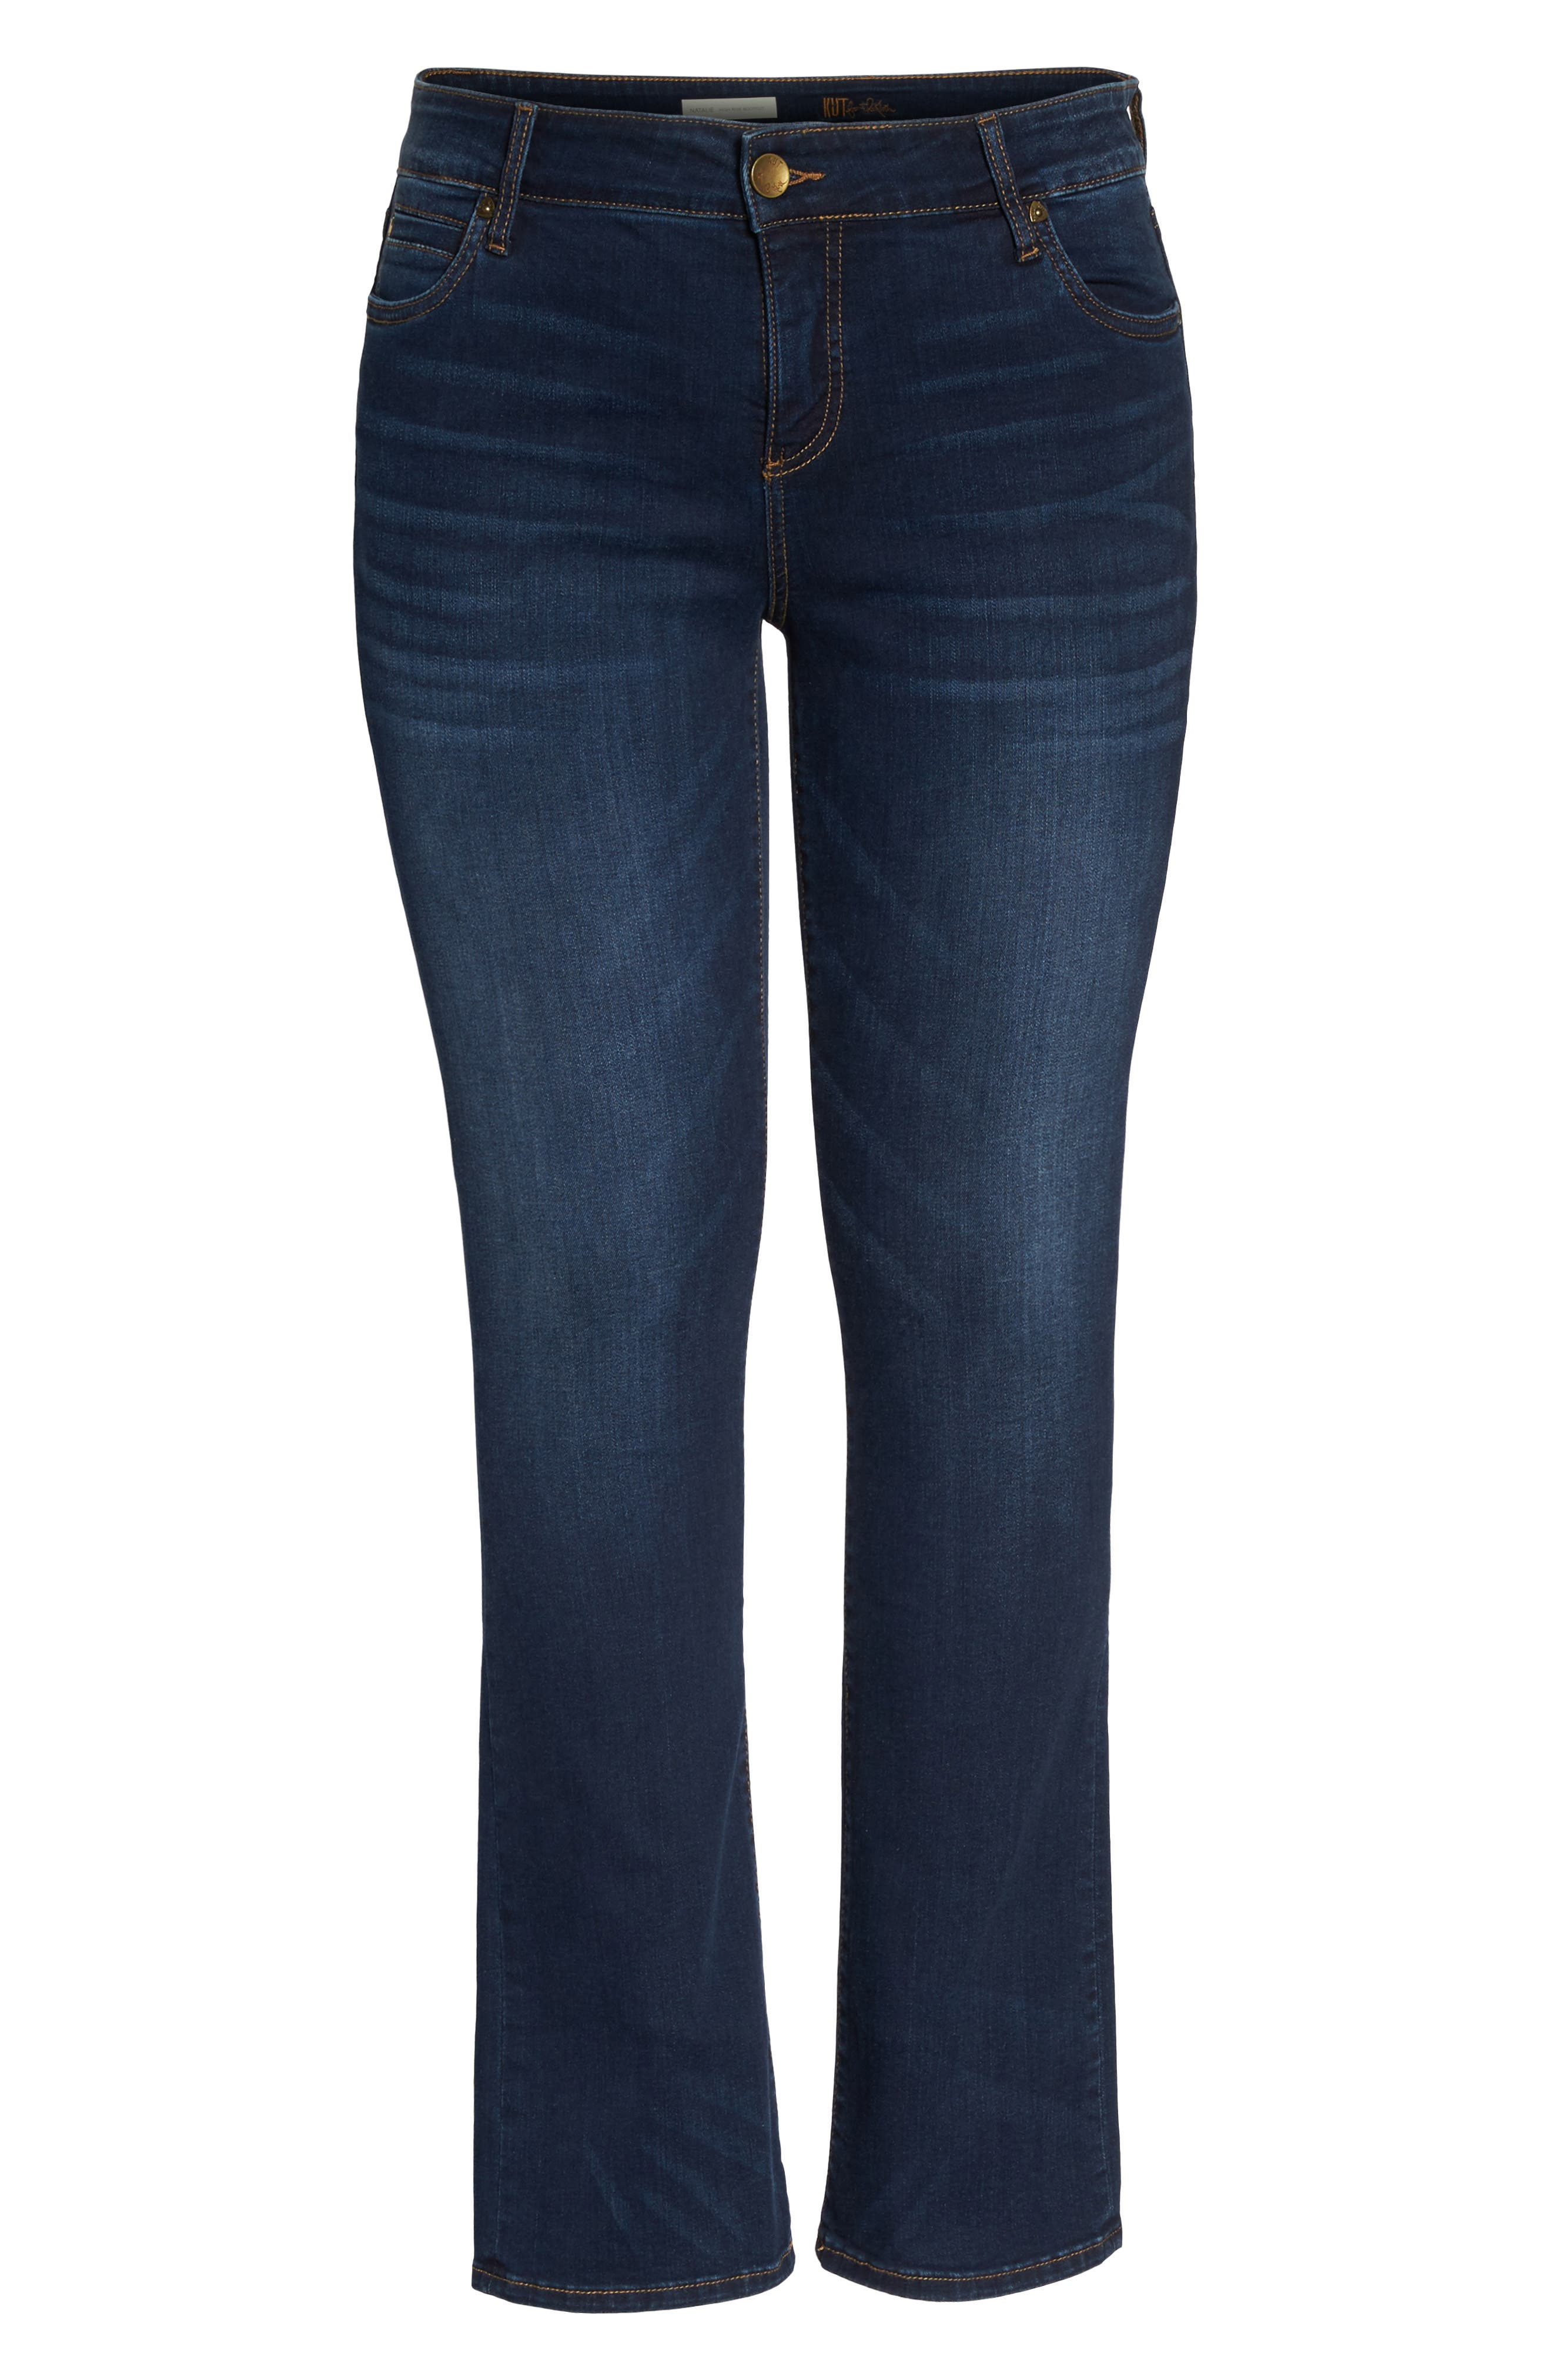 Alternate Image 6  - KUT from the Kloth Natalie High Waist Bootcut Jeans (Closeness) (Plus Size)